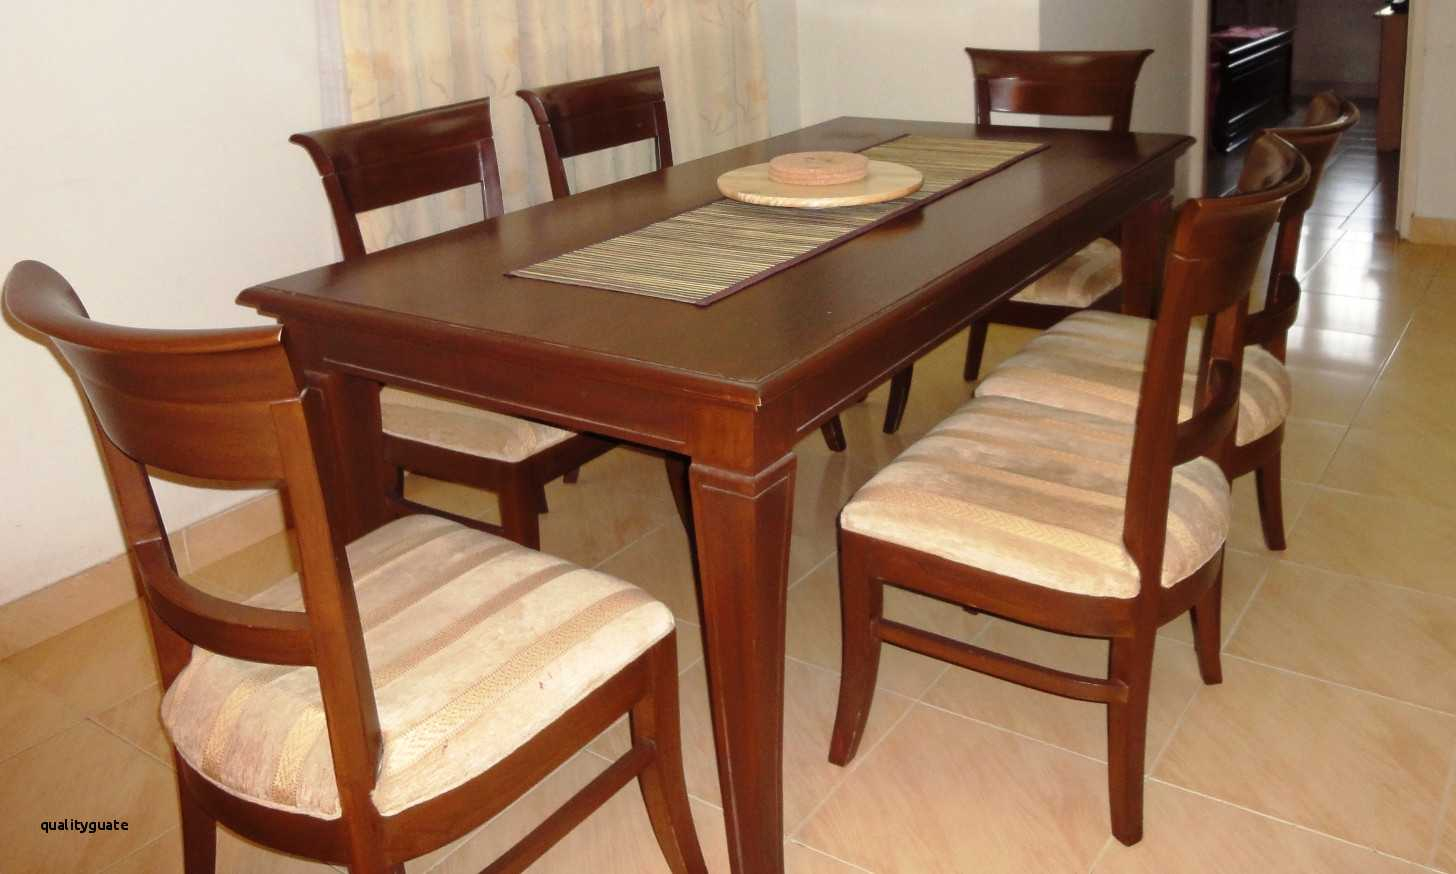 Fabulous Second Hand Dining Table Chairs Wonderful Room Furniture Layjao